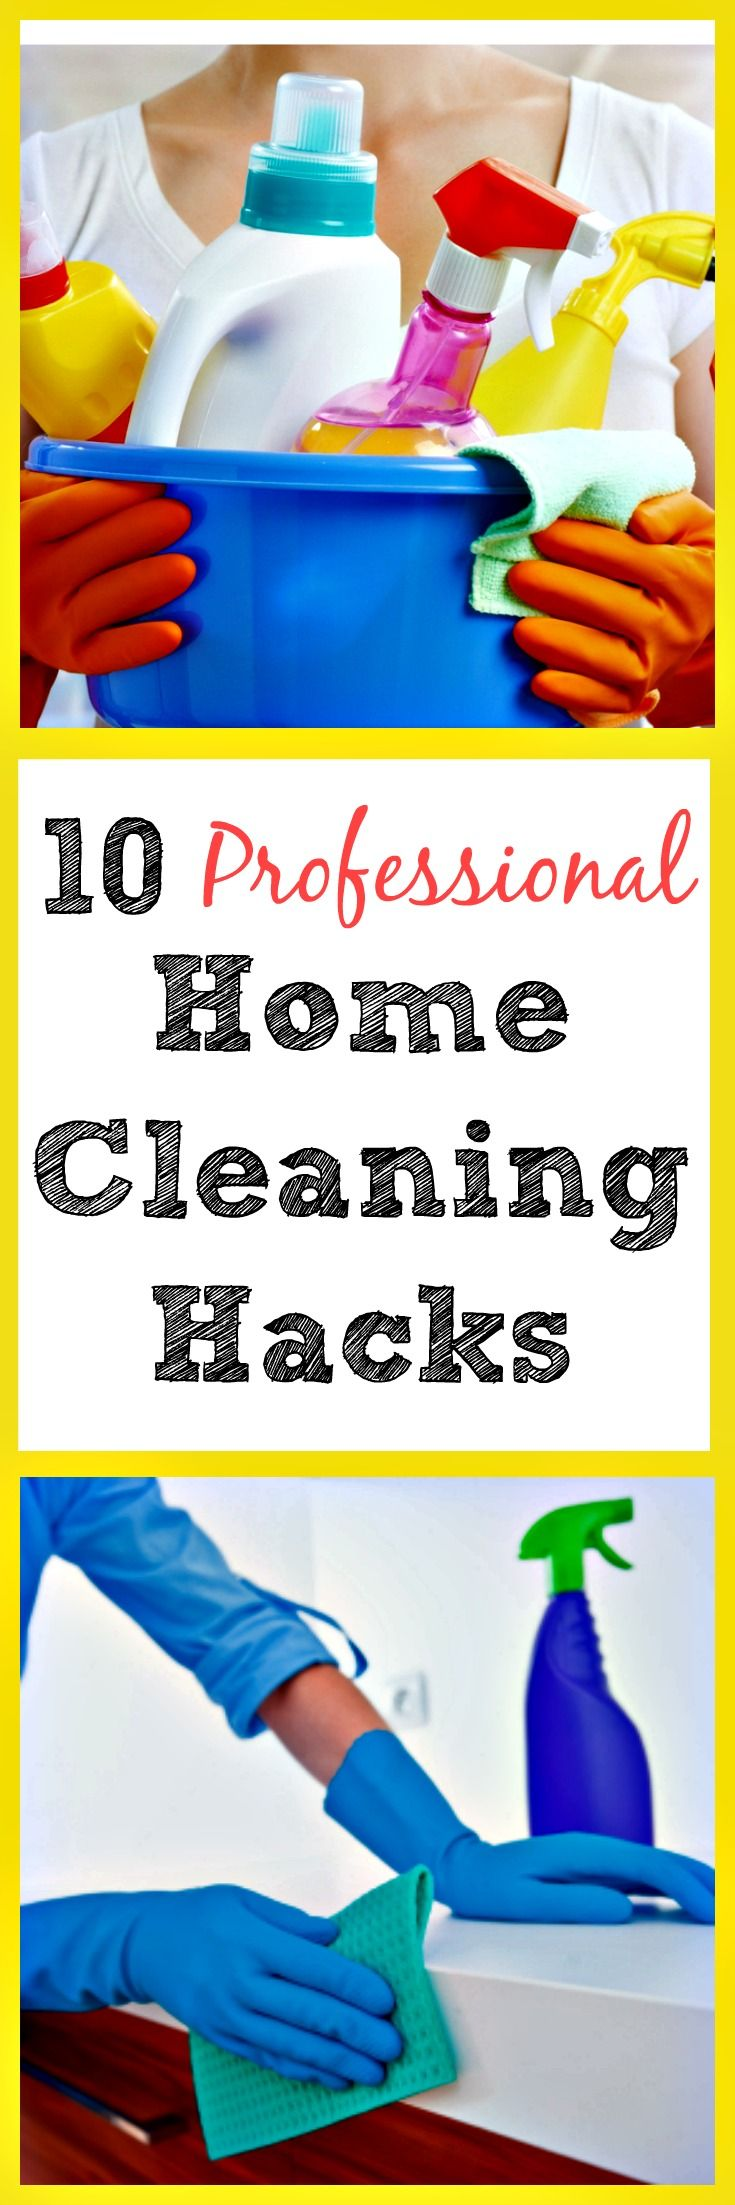 '10 Professional Home Cleaning Hacks...!' (via Housewife How-To's®) http://superhousecleaning.co.uk